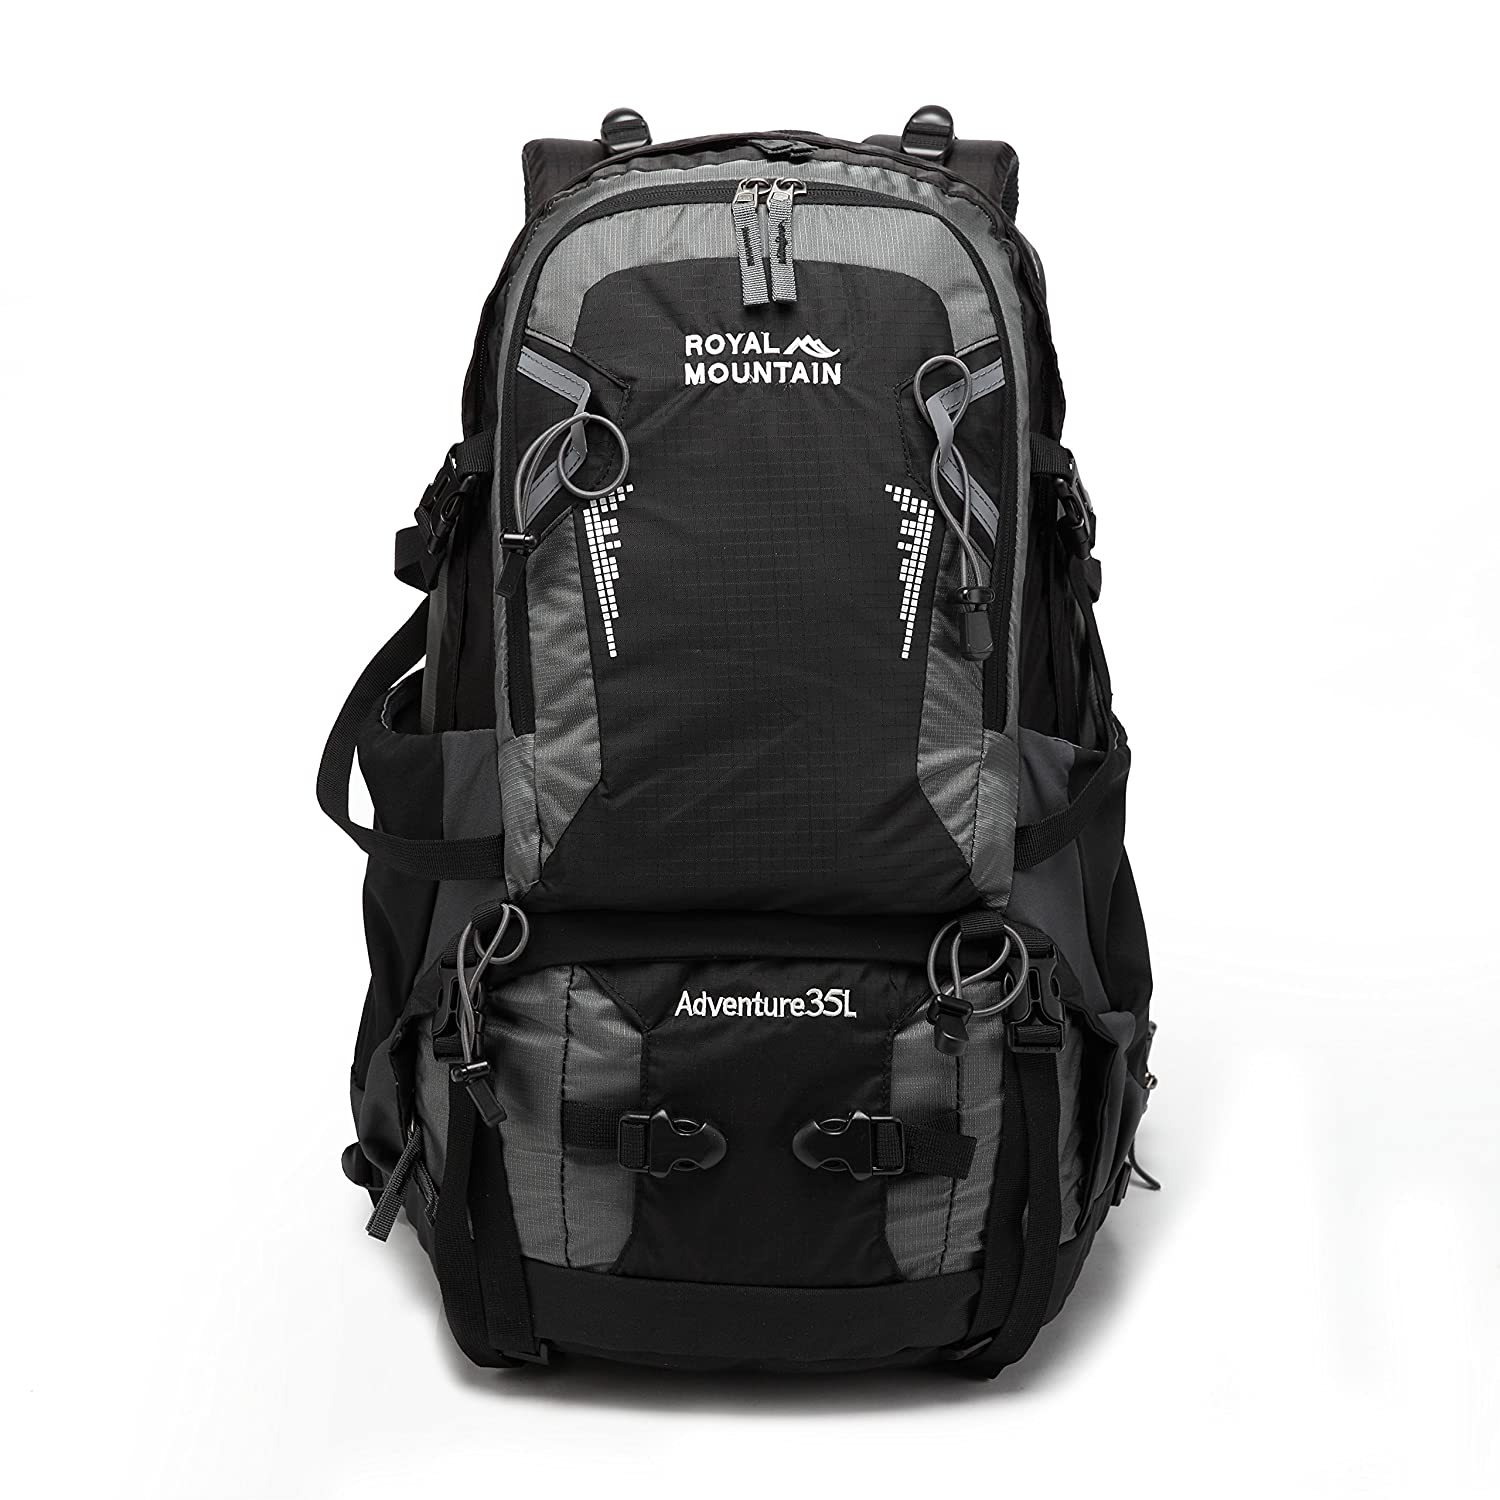 70%OFF ROYAL MOUNTAIN Hiking Backpack Waterproof Outdoor Sport Daypack with Rain Cover (35L)